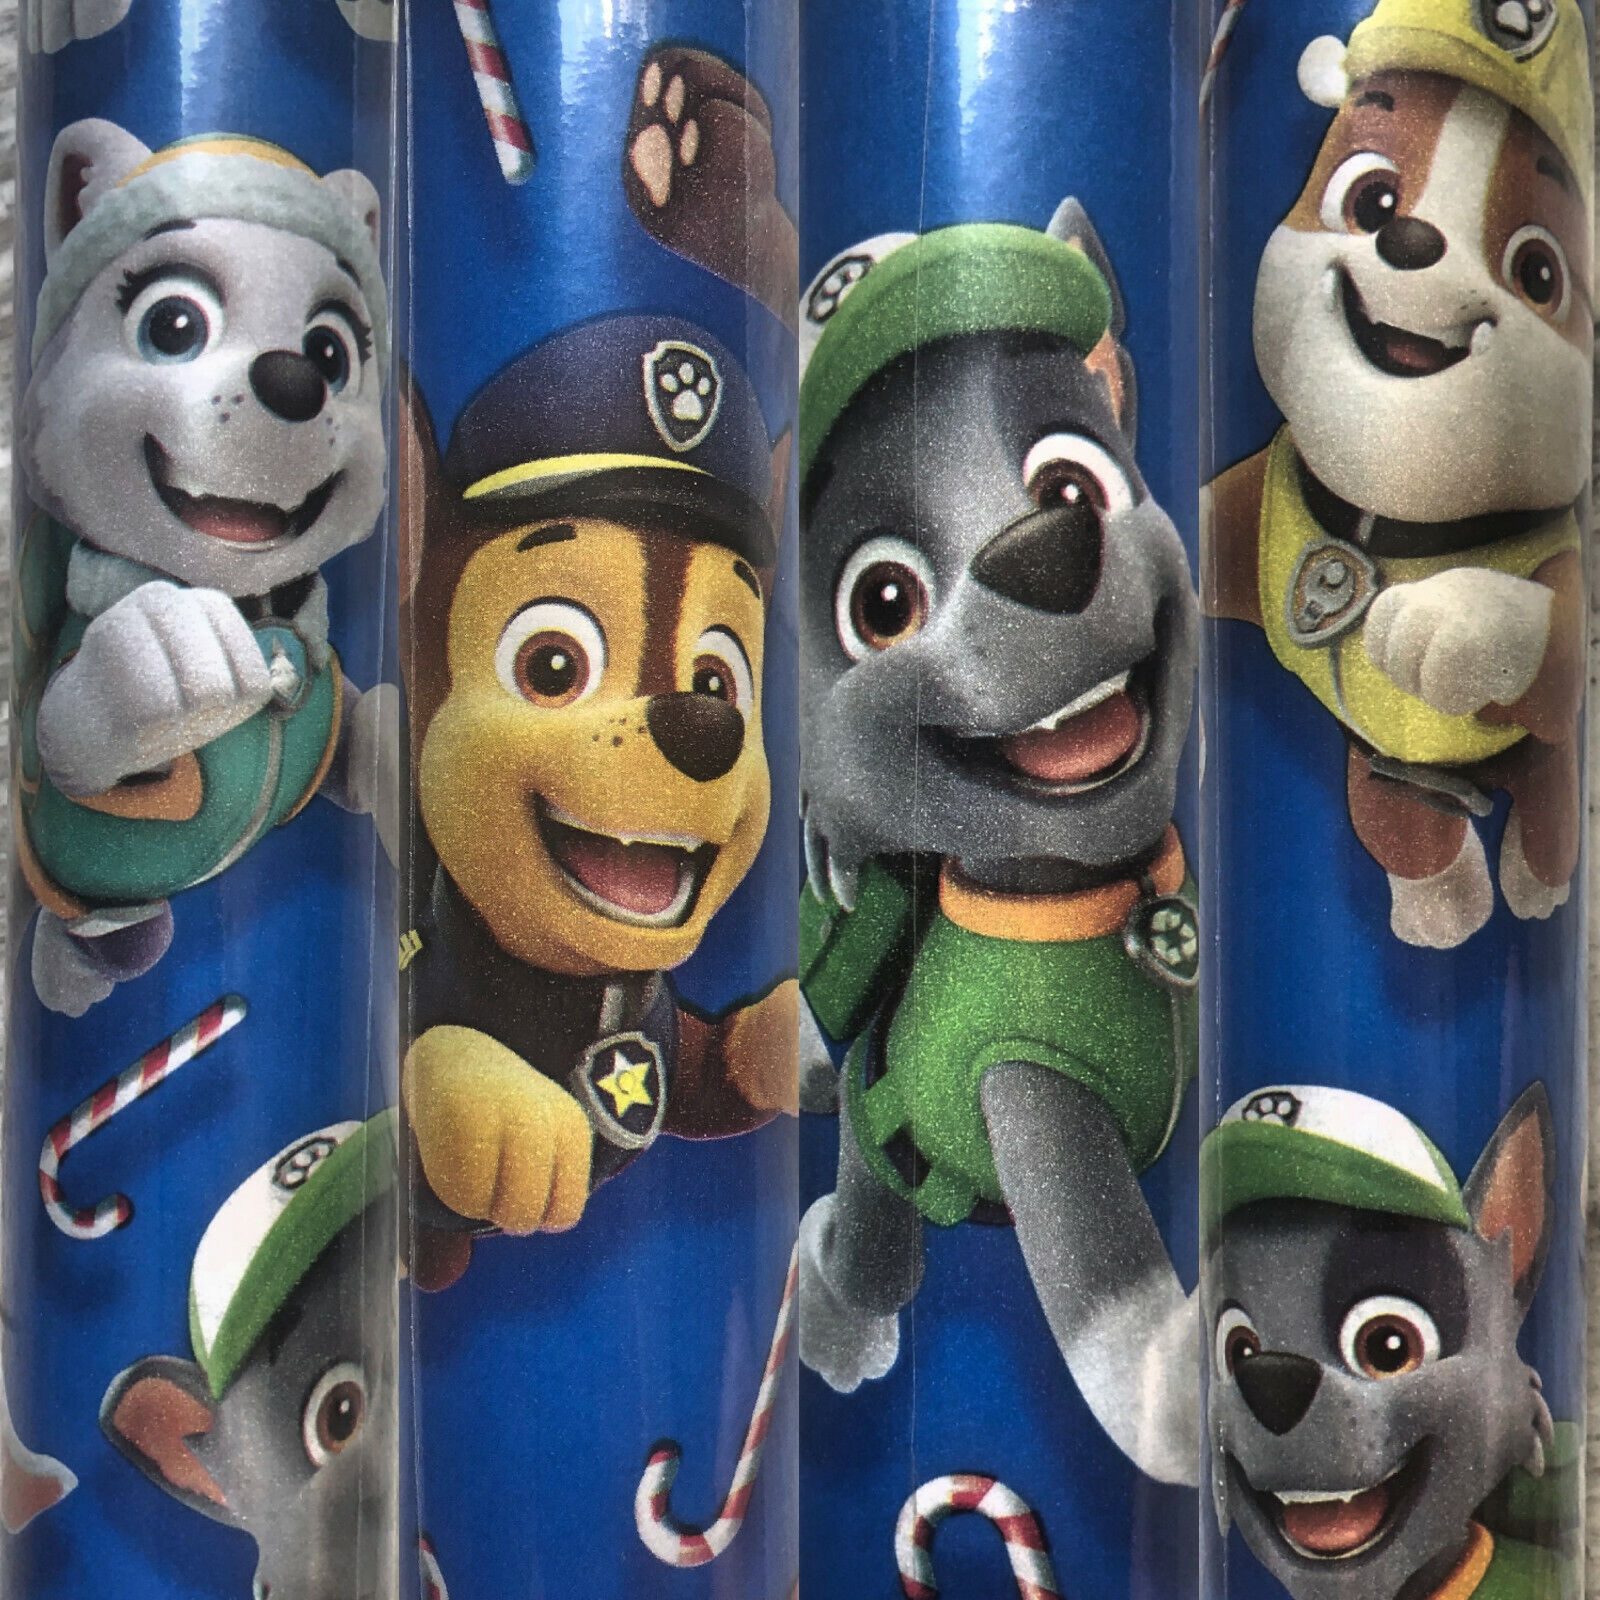 1 Large Roll PAW Patrol Christmas Gift Wrapping Paper 70 sq